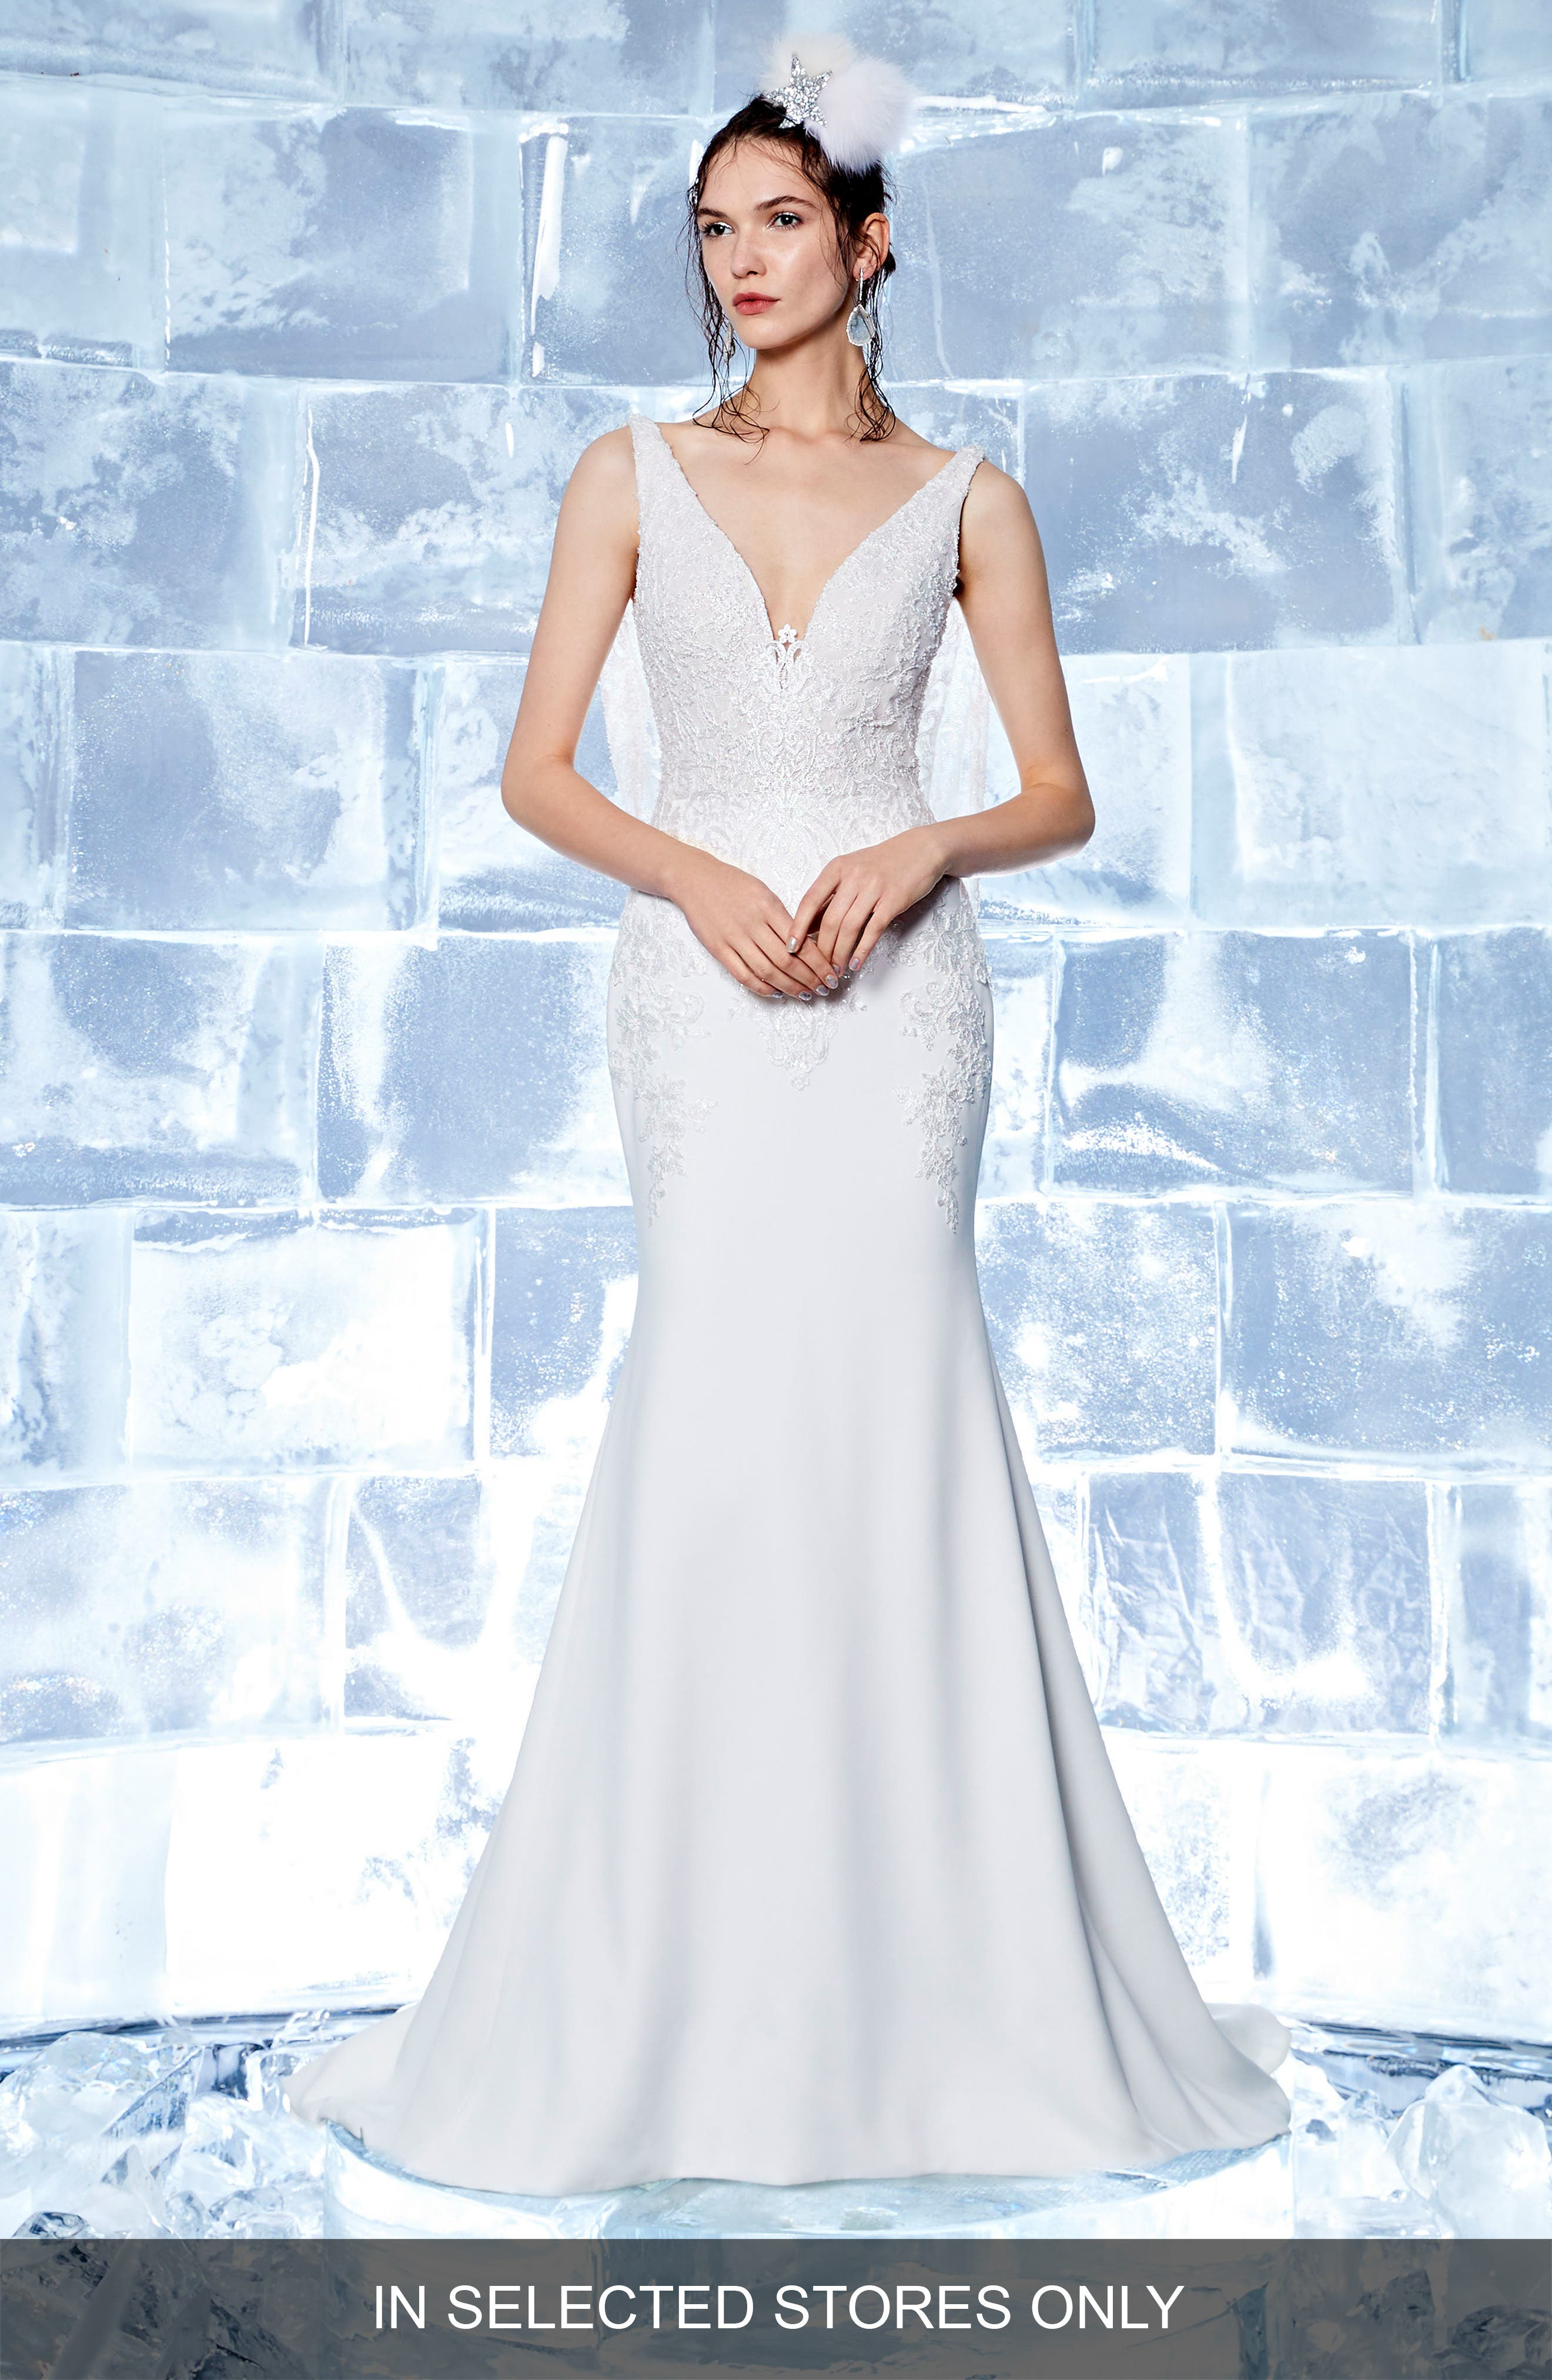 Holly Embroidered Trumpet Gown,                         Main,                         color, Off White/ Soft Nude